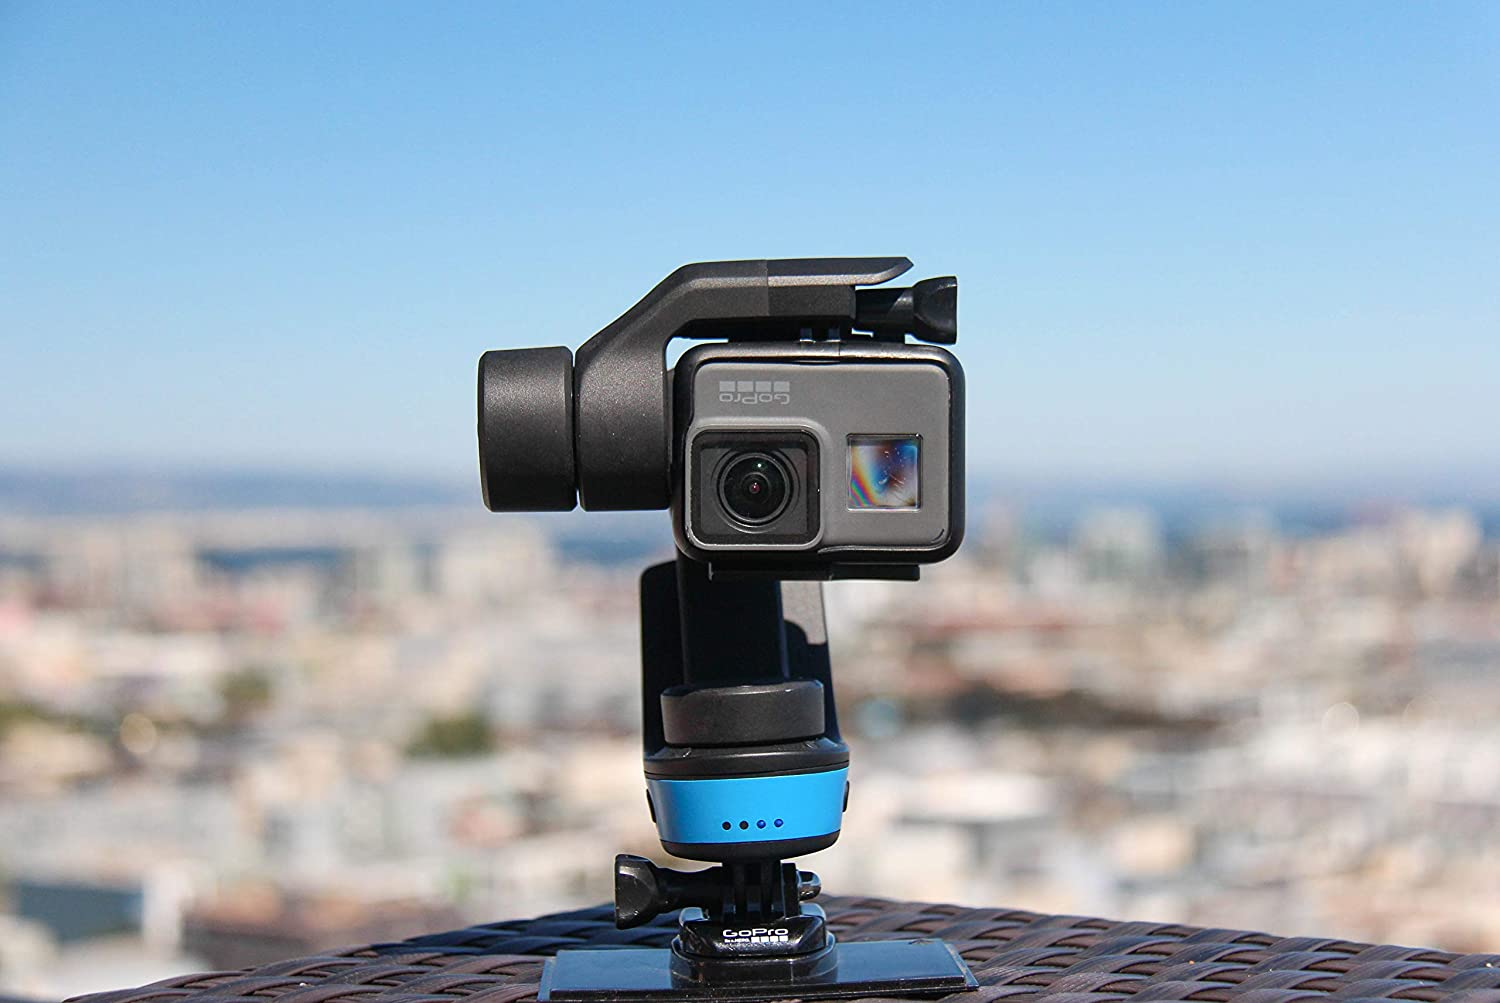 Slick Your GoPro stabilizer for Sports